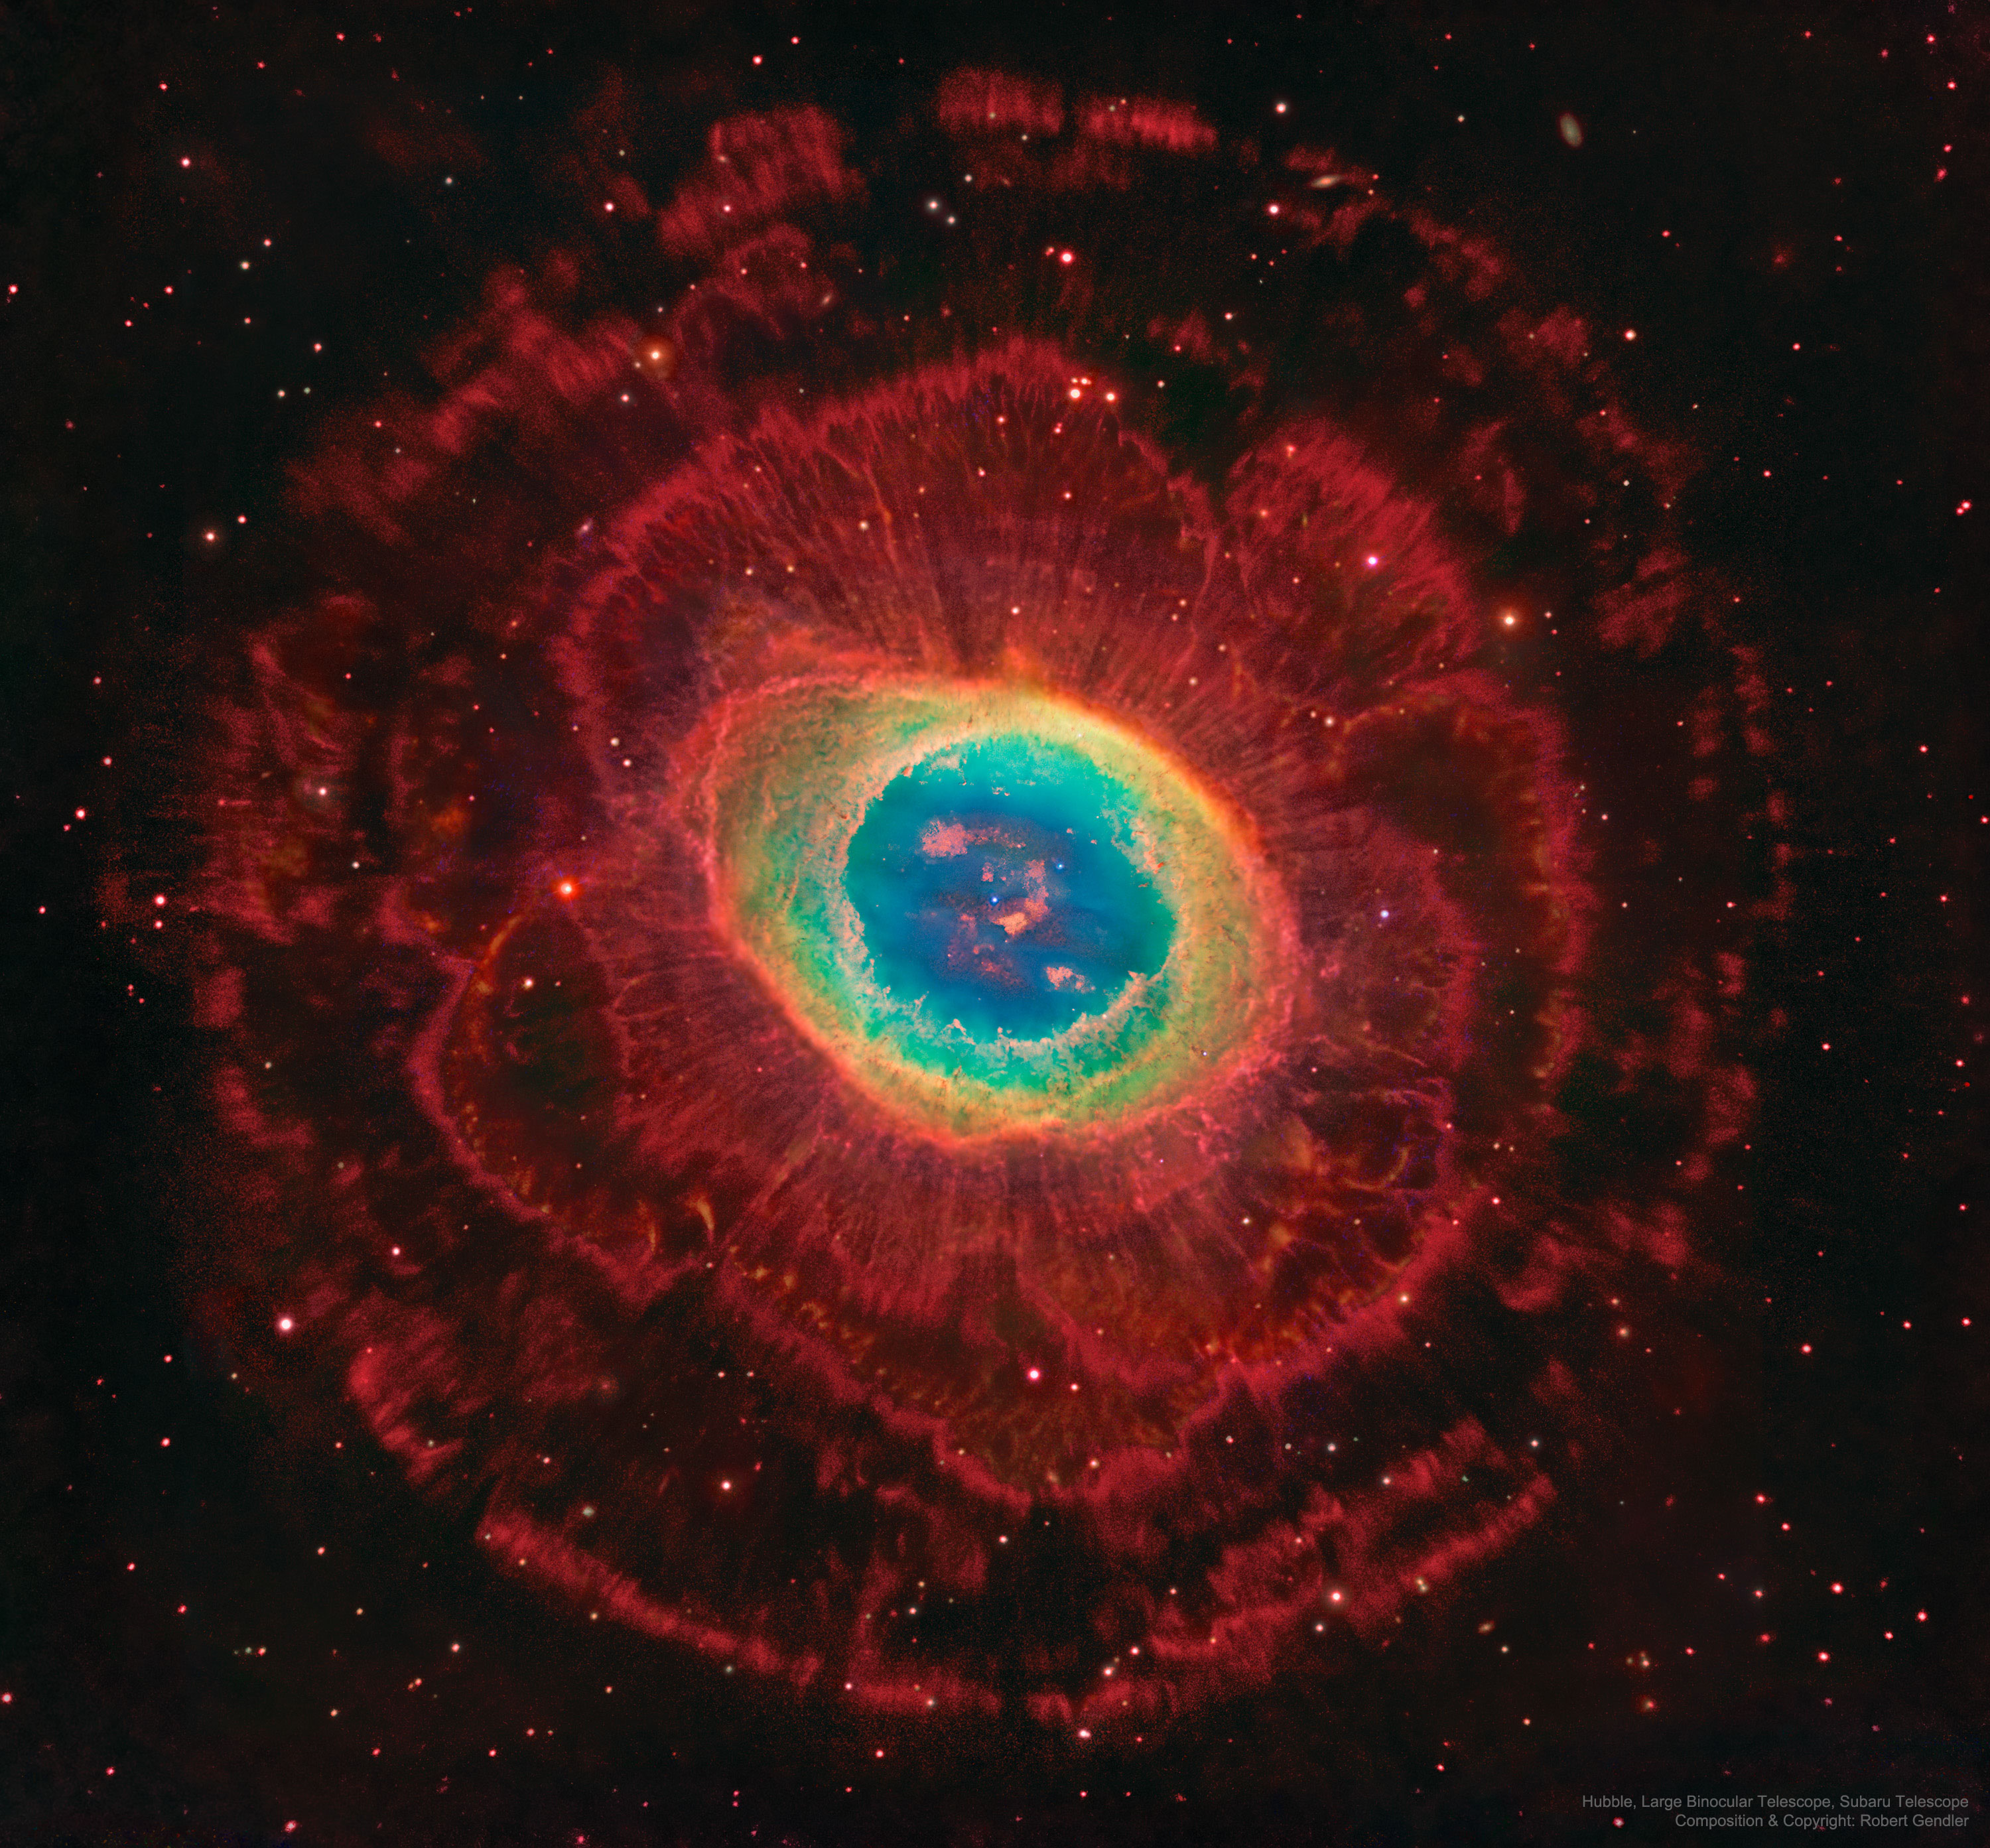 Rings Around the Ring Nebula by Hubble, Large Binocular Telescope, Subaru Telescope; Composition & Copyright: Robert Gendler